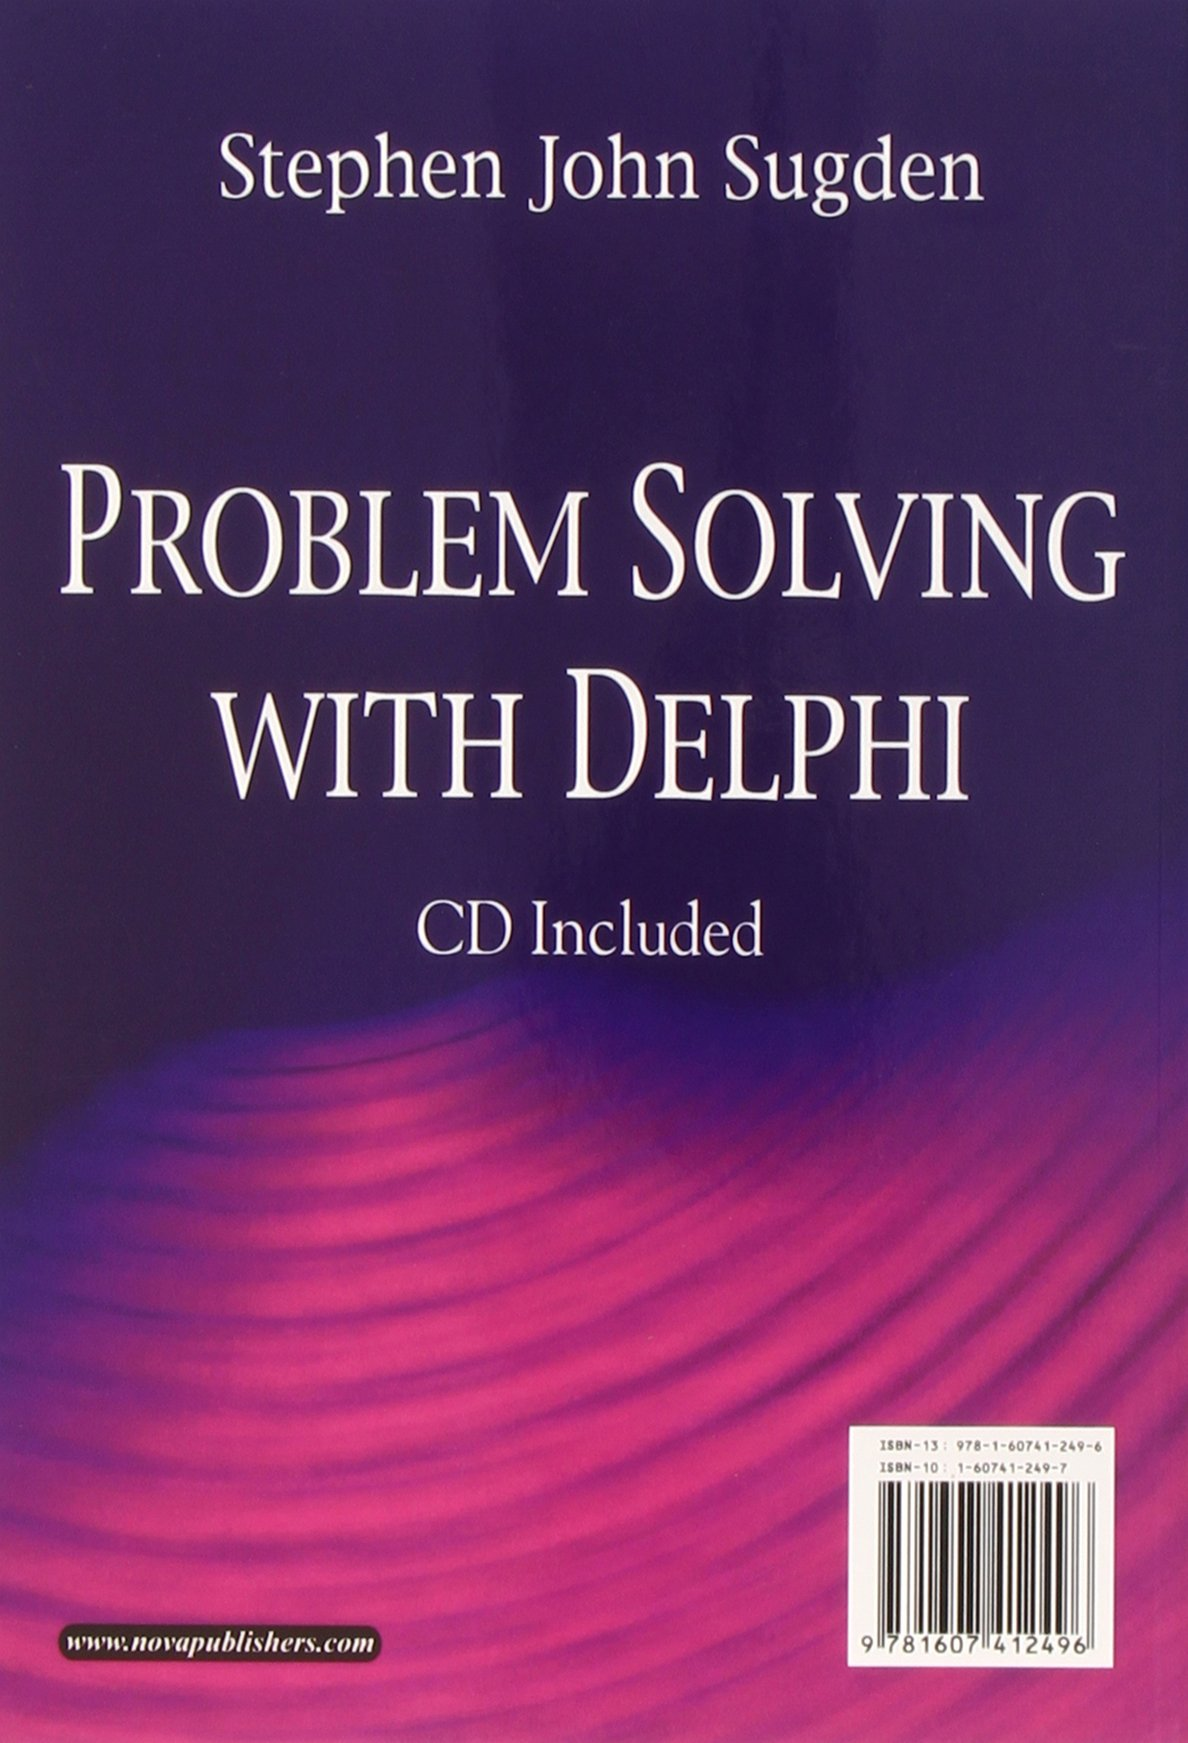 Problem Solving with Delphi [With CD (Audio)] (Computer Science, Technology and Applications)